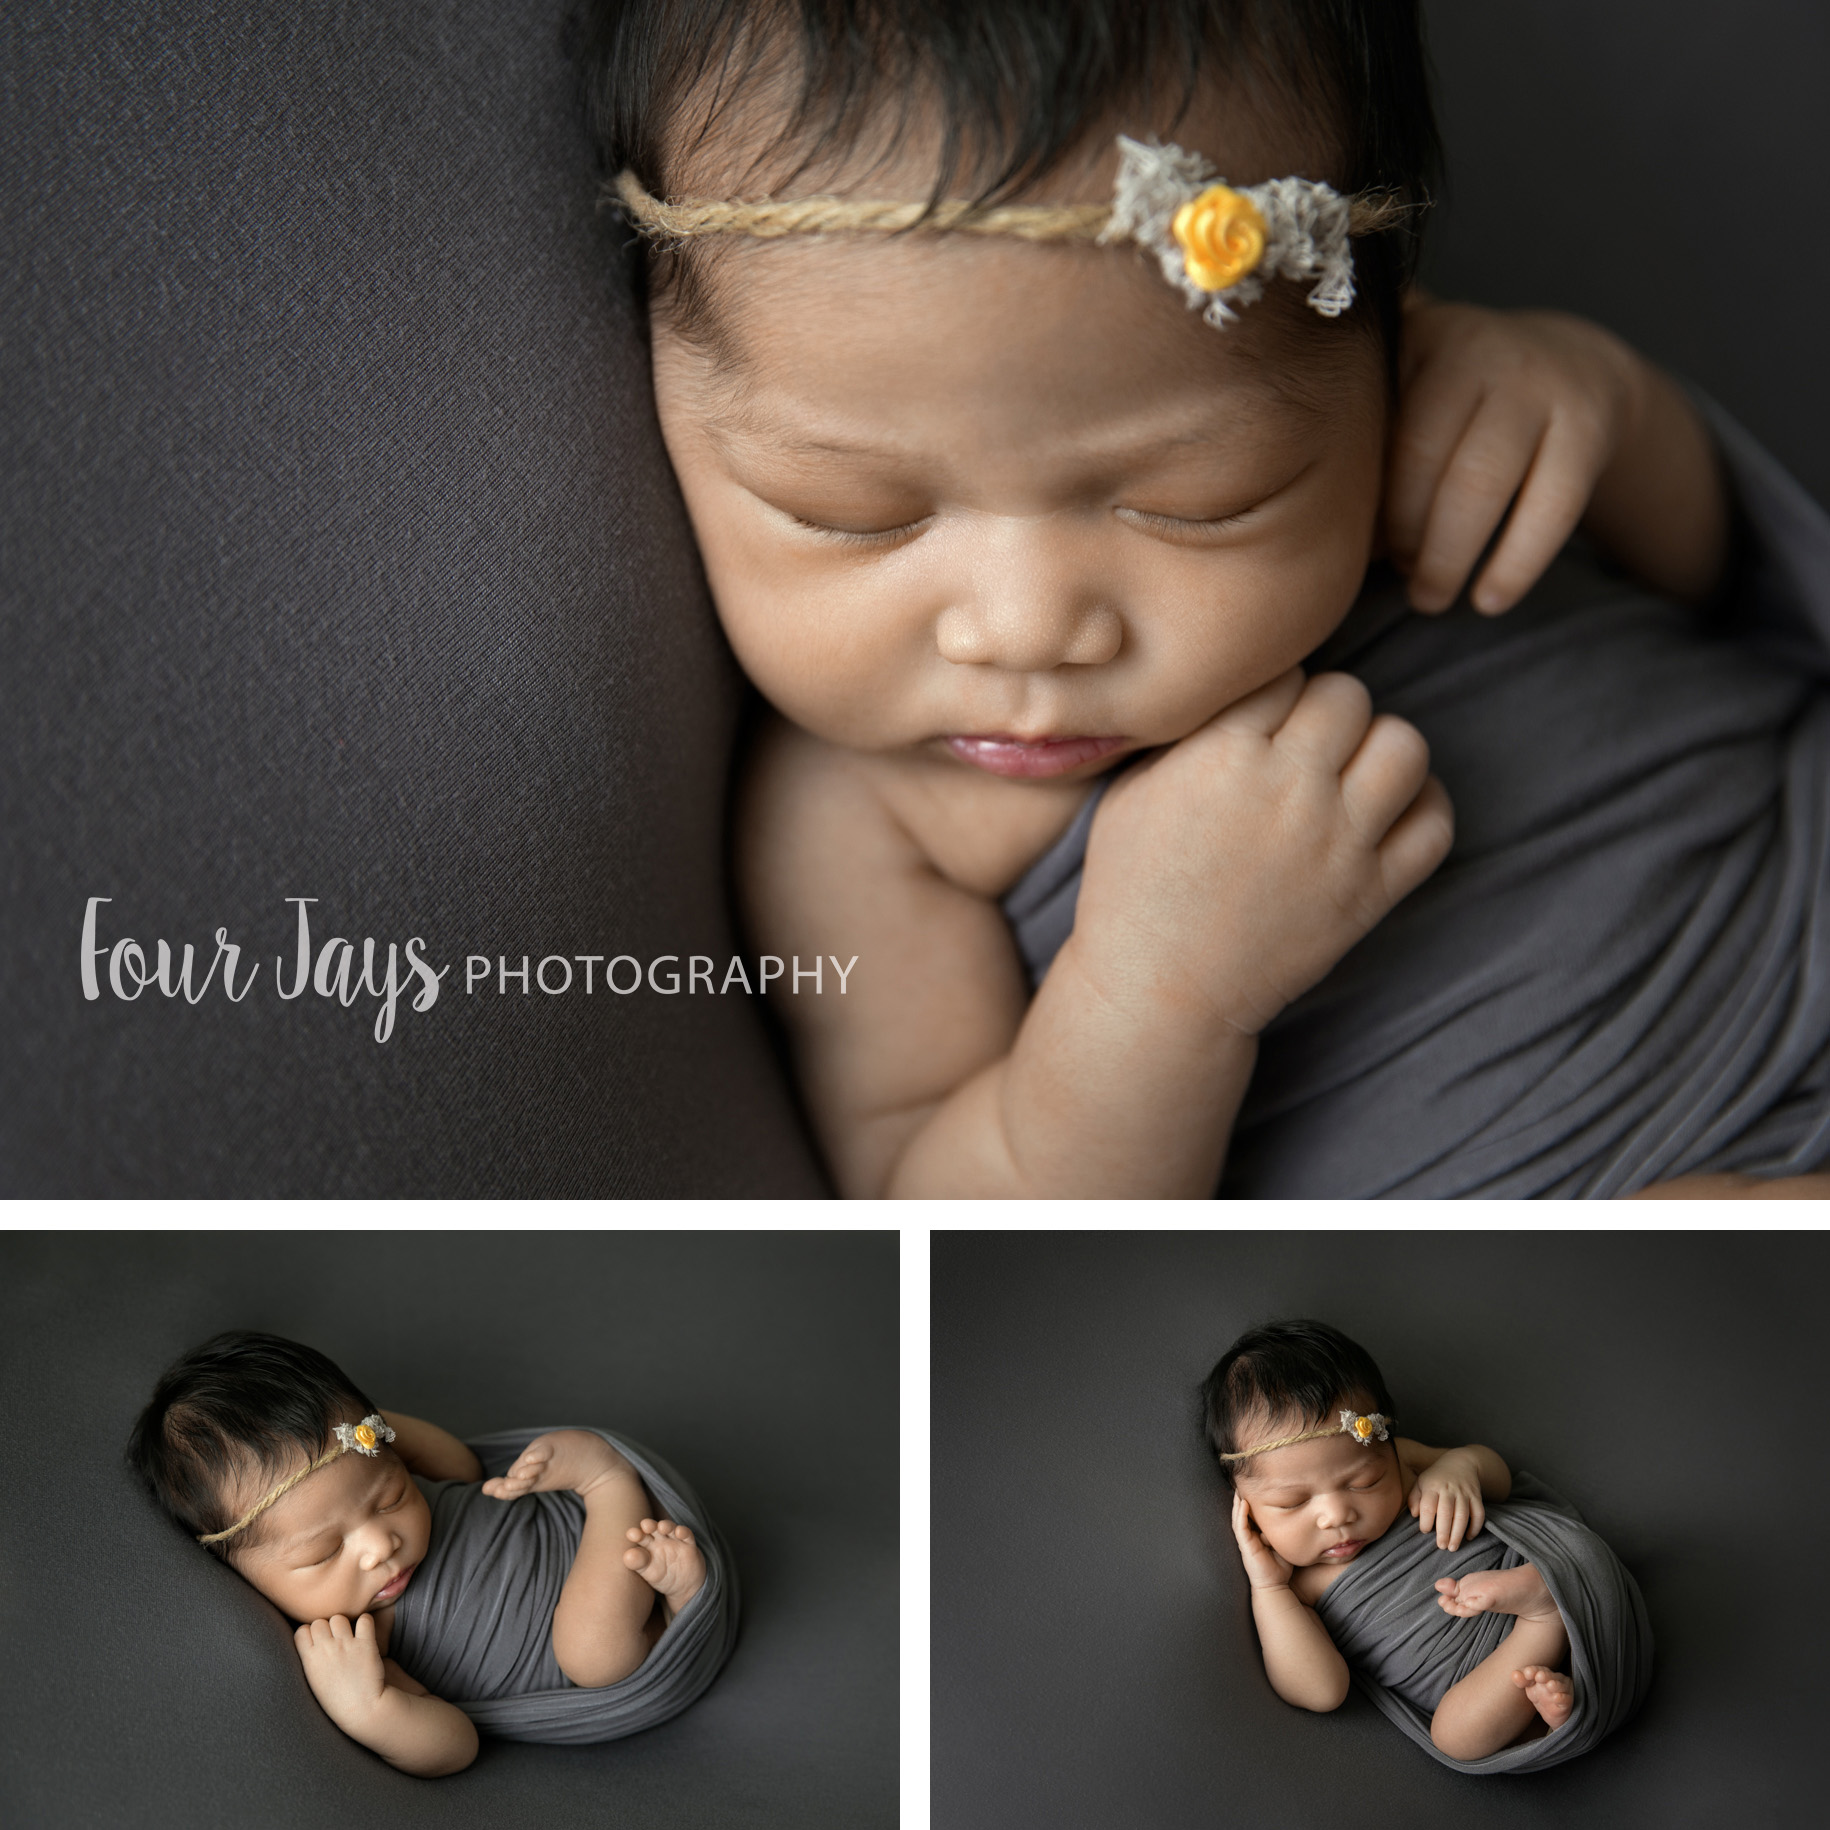 In home posed newborn photographers portland oregon wm.jpg